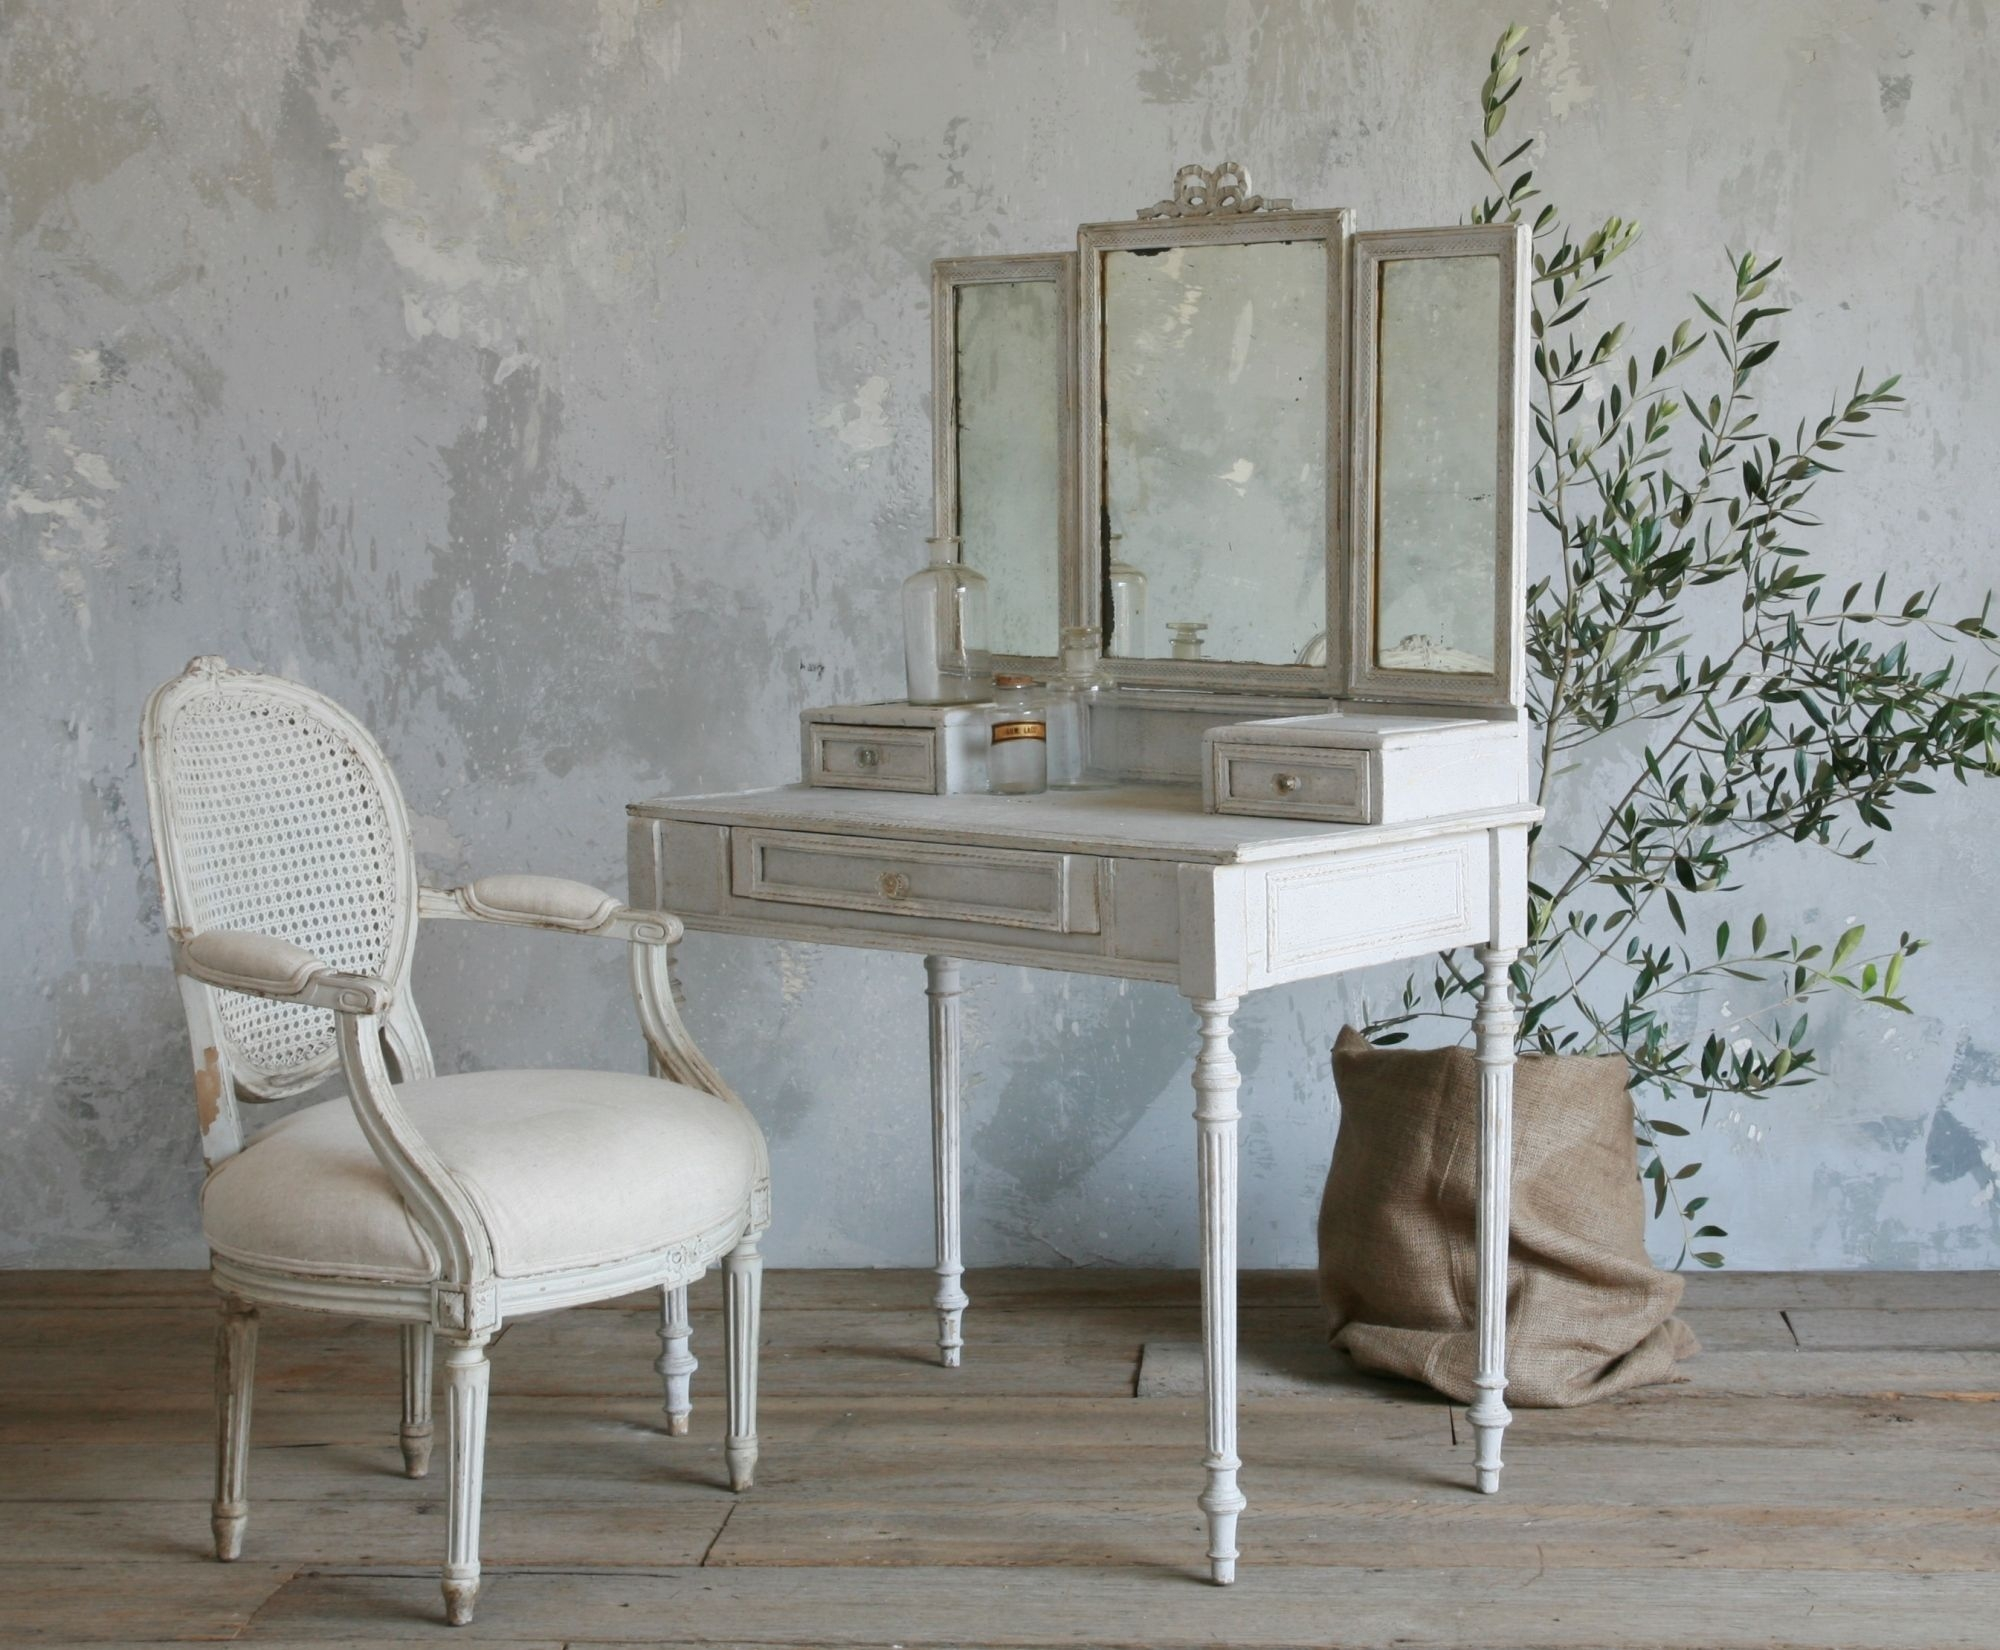 Old And Vintage French Style Small Vanity Table Painted With White Within Old French Mirrors (Image 12 of 15)